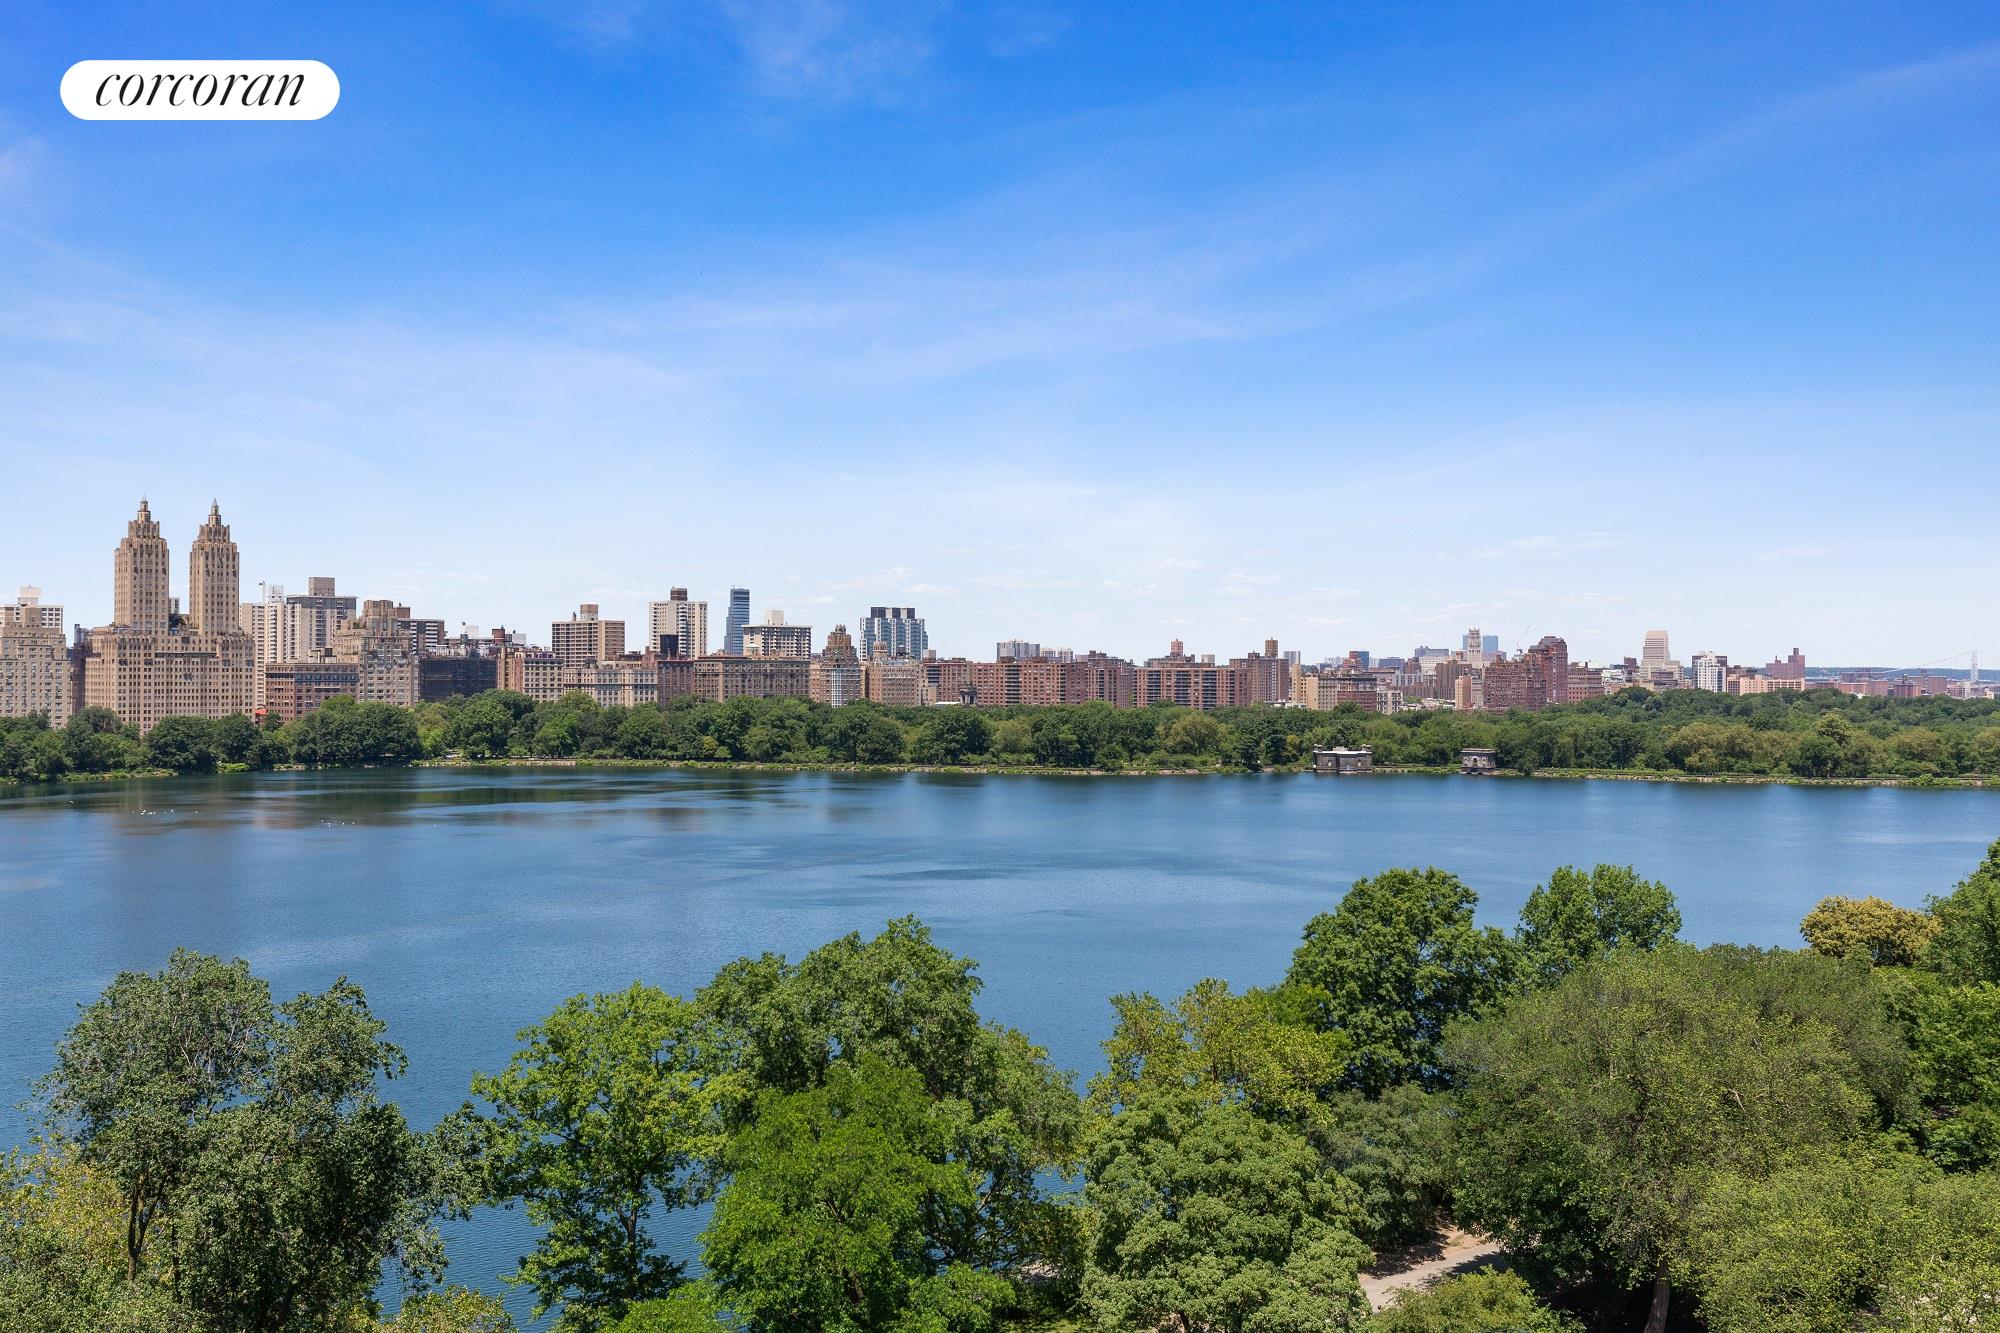 Welcome to the entire Eighteenth floor of 1050 Fifth Avenue. This trophy property has over 7,500 square feet of interior living, 1,500 square feet of outdoor living and almost 100 feet directly on Central Park. Dramatic new windows which span from 7 to 14 feet capture 180-degree views from one end of Central Park to the other. These breathtaking views allow one to see from Central Park South's skyline to the George Washington Bridge, and in between the majesty of the Jacqueline Kennedy Onassis Reservoir.Entertain from the living room and adjacent study, which can easily be combined to create a remarkable 40-foot living room directly on Fifth Avenue. Continue entertaining outdoors on the magnificent wrap terraces, also overlooking the reservoir, park and skyline views. One has the luxury of enjoying mornings, afternoons and sunsets, these spectacular views are yours to behold inside and outside of this home.There are 16 rooms of formal and informal spaces, each one with dramatically oversized windows. The views, light and large spacious rooms continually surprise one room after room. Currently configured with a living room, open kitchen, dining room, study, library, media room, kitchenette, home office, gym, laundry room, seven bedrooms, nine baths and two powder rooms. With new windows, partial central air and two additional lobby level rooms available this residence has it all.The principal suite consists of two enormous rooms with south facing light and park views from not only inside the suite but outside on the private terrace as well. There are two baths and the ability to create a windowed dressing room. All the additional bedrooms are oversized, filled with light and have open views.With a 7,500 square foot home, the only amenity one needs is a garage, which 1050 has, as well as an attentive doorman, concierge, resident manager, handymen and porters. This well-run building allows 50% financing and has no flip tax. 1050 is an established cooperative that sits 